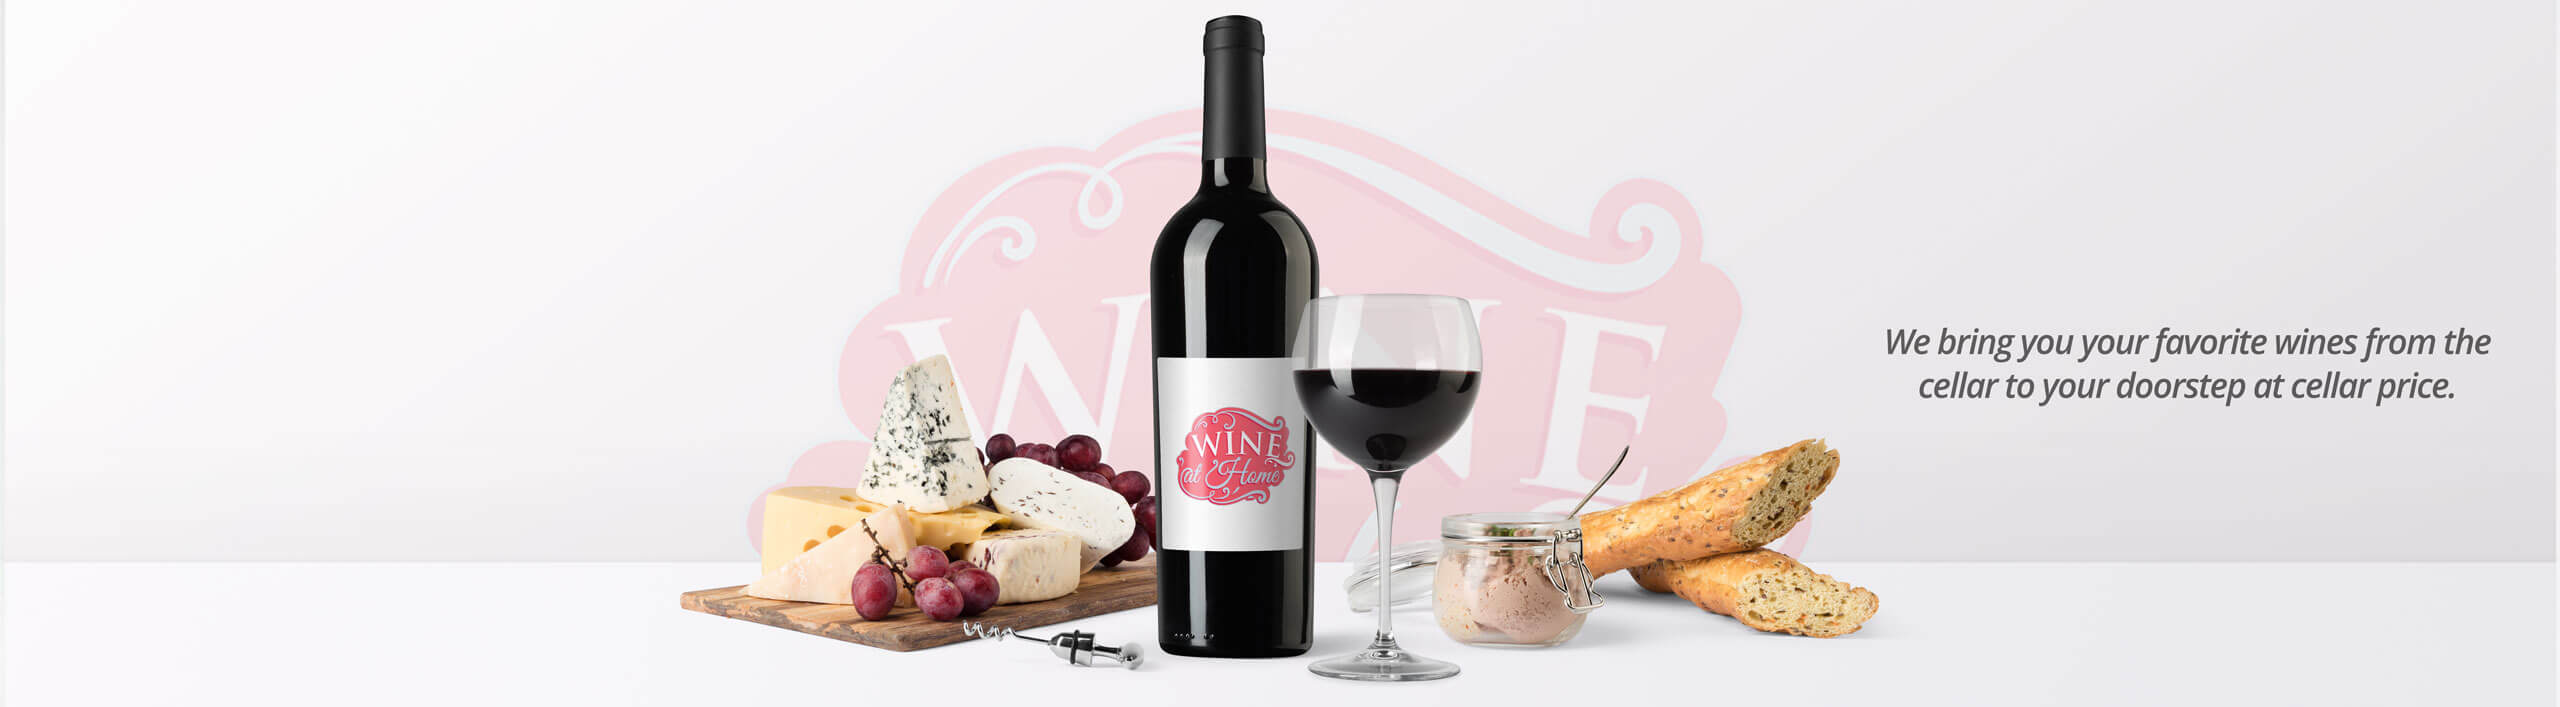 Wine-At-Home Banner Ad. Buy Wine Online